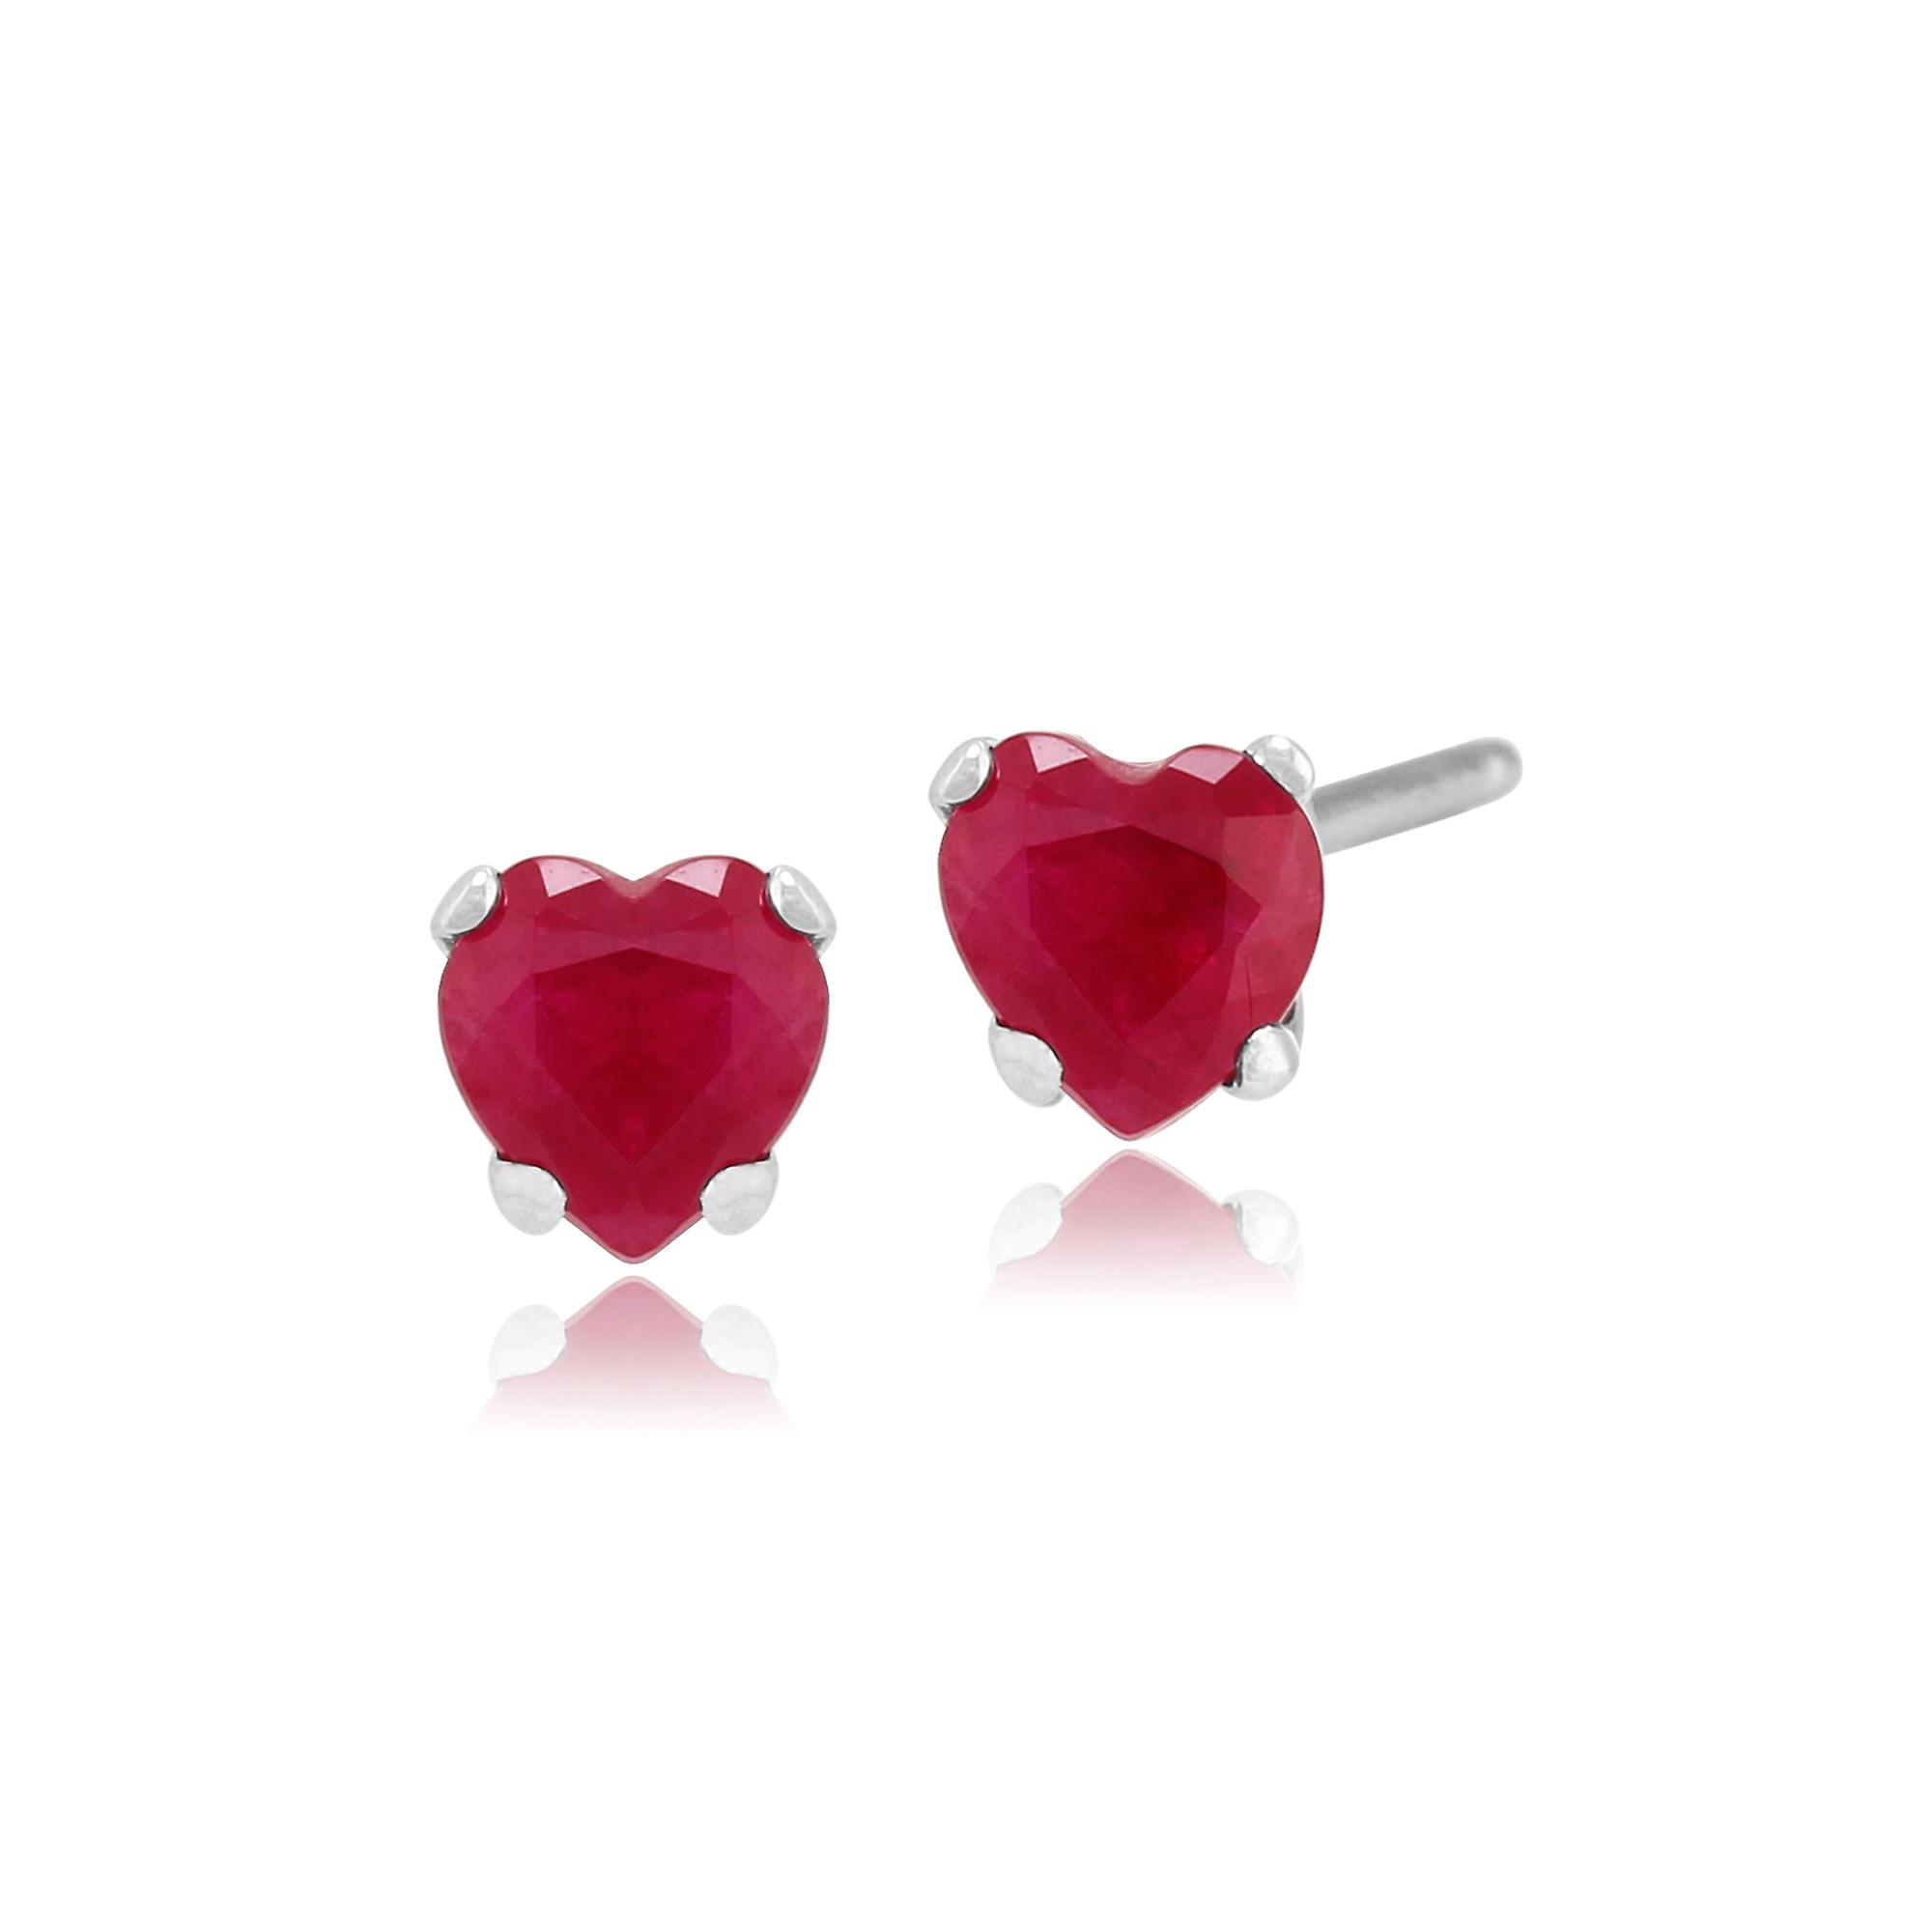 Gemondo 9ct White Gold 0.52ct Ruby 4 Claw Set Heart Stud Earrings 4x4mm